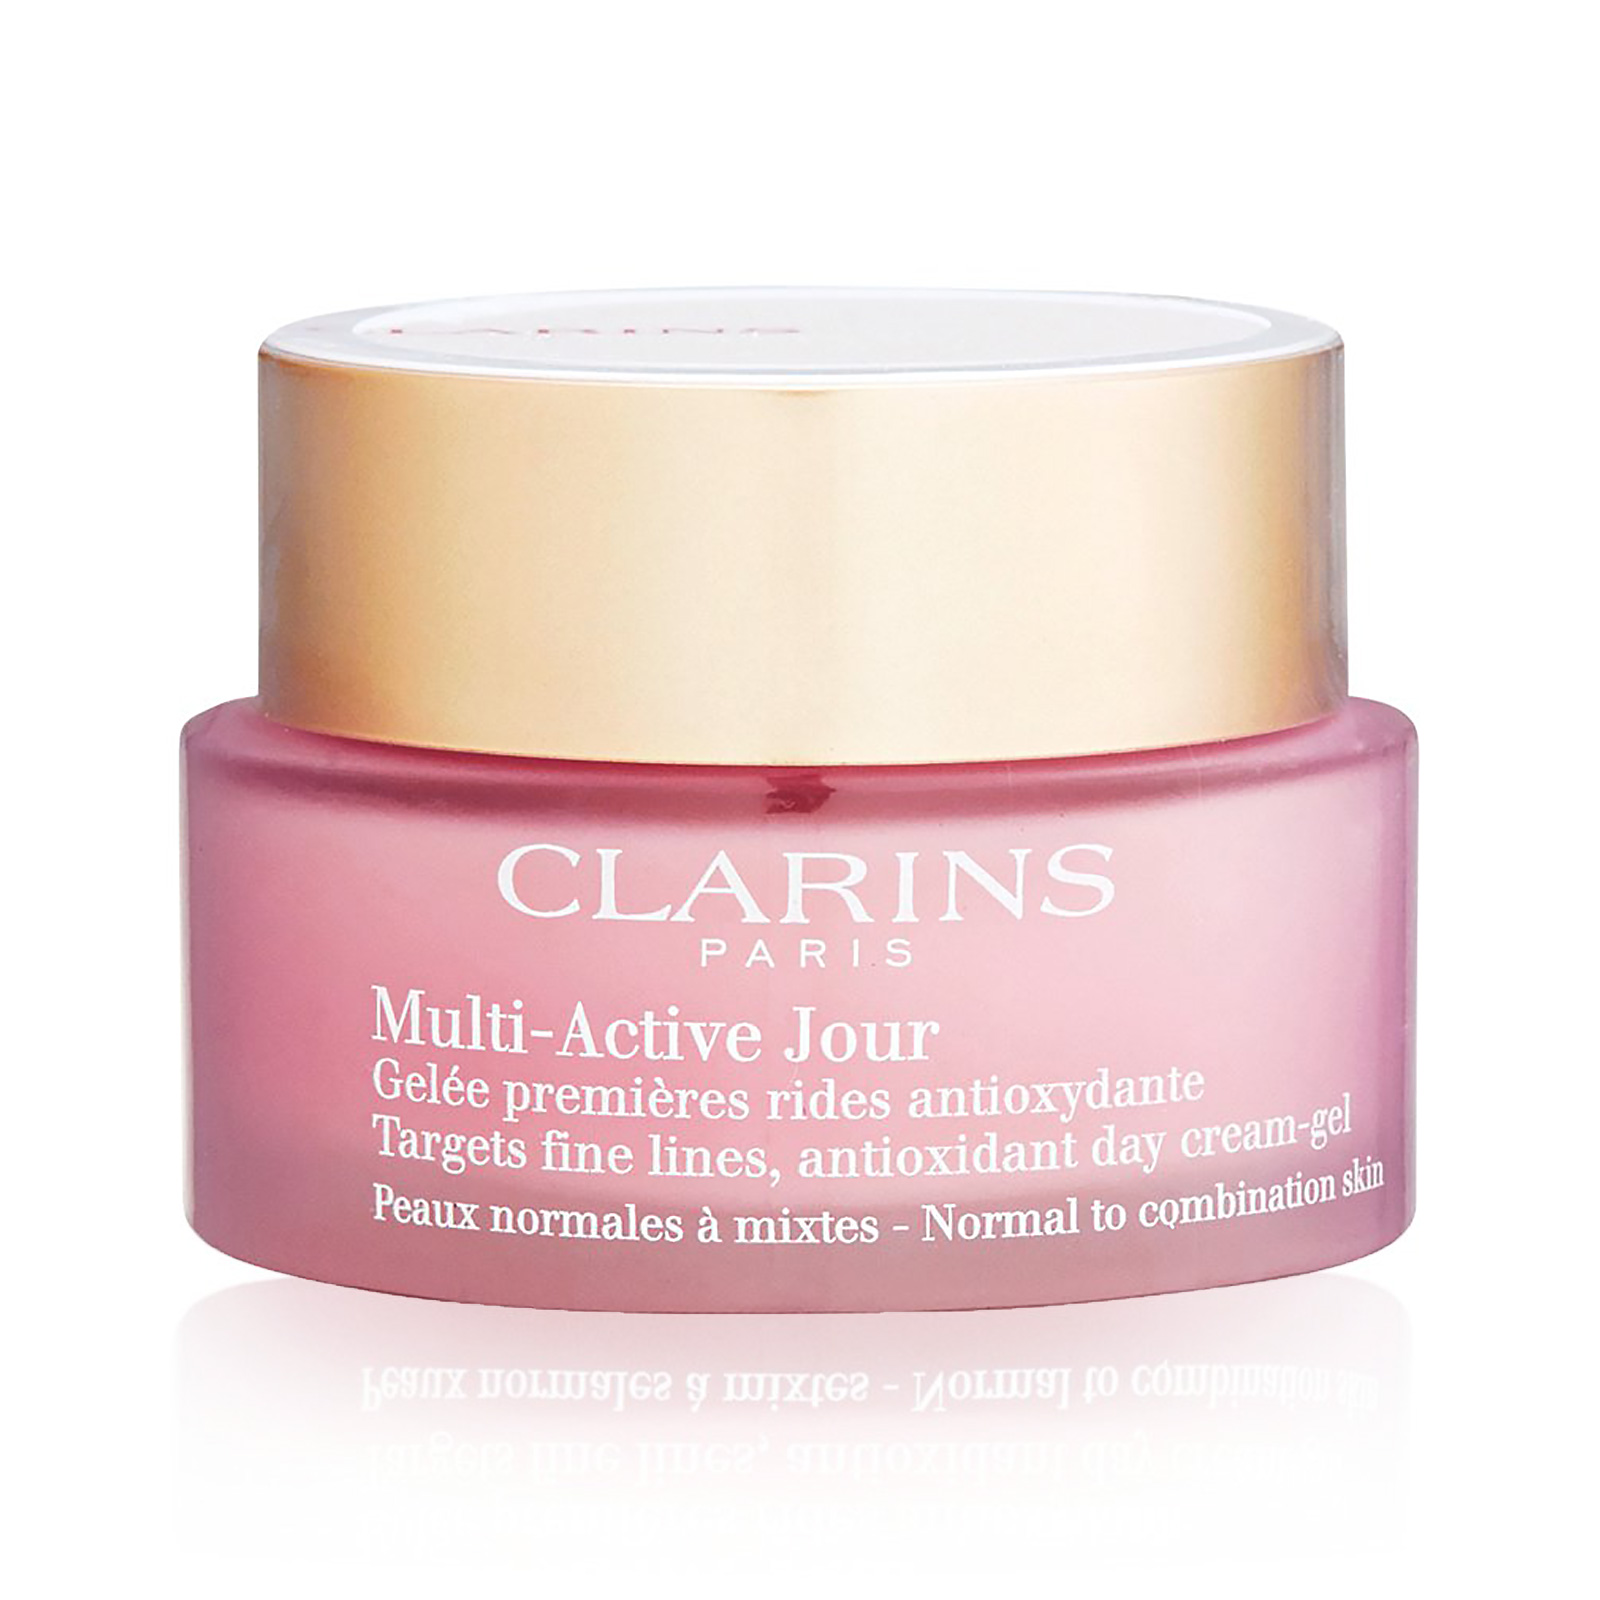 Multi-Active Day Cream-Gel (For Normal to Combination Skin)